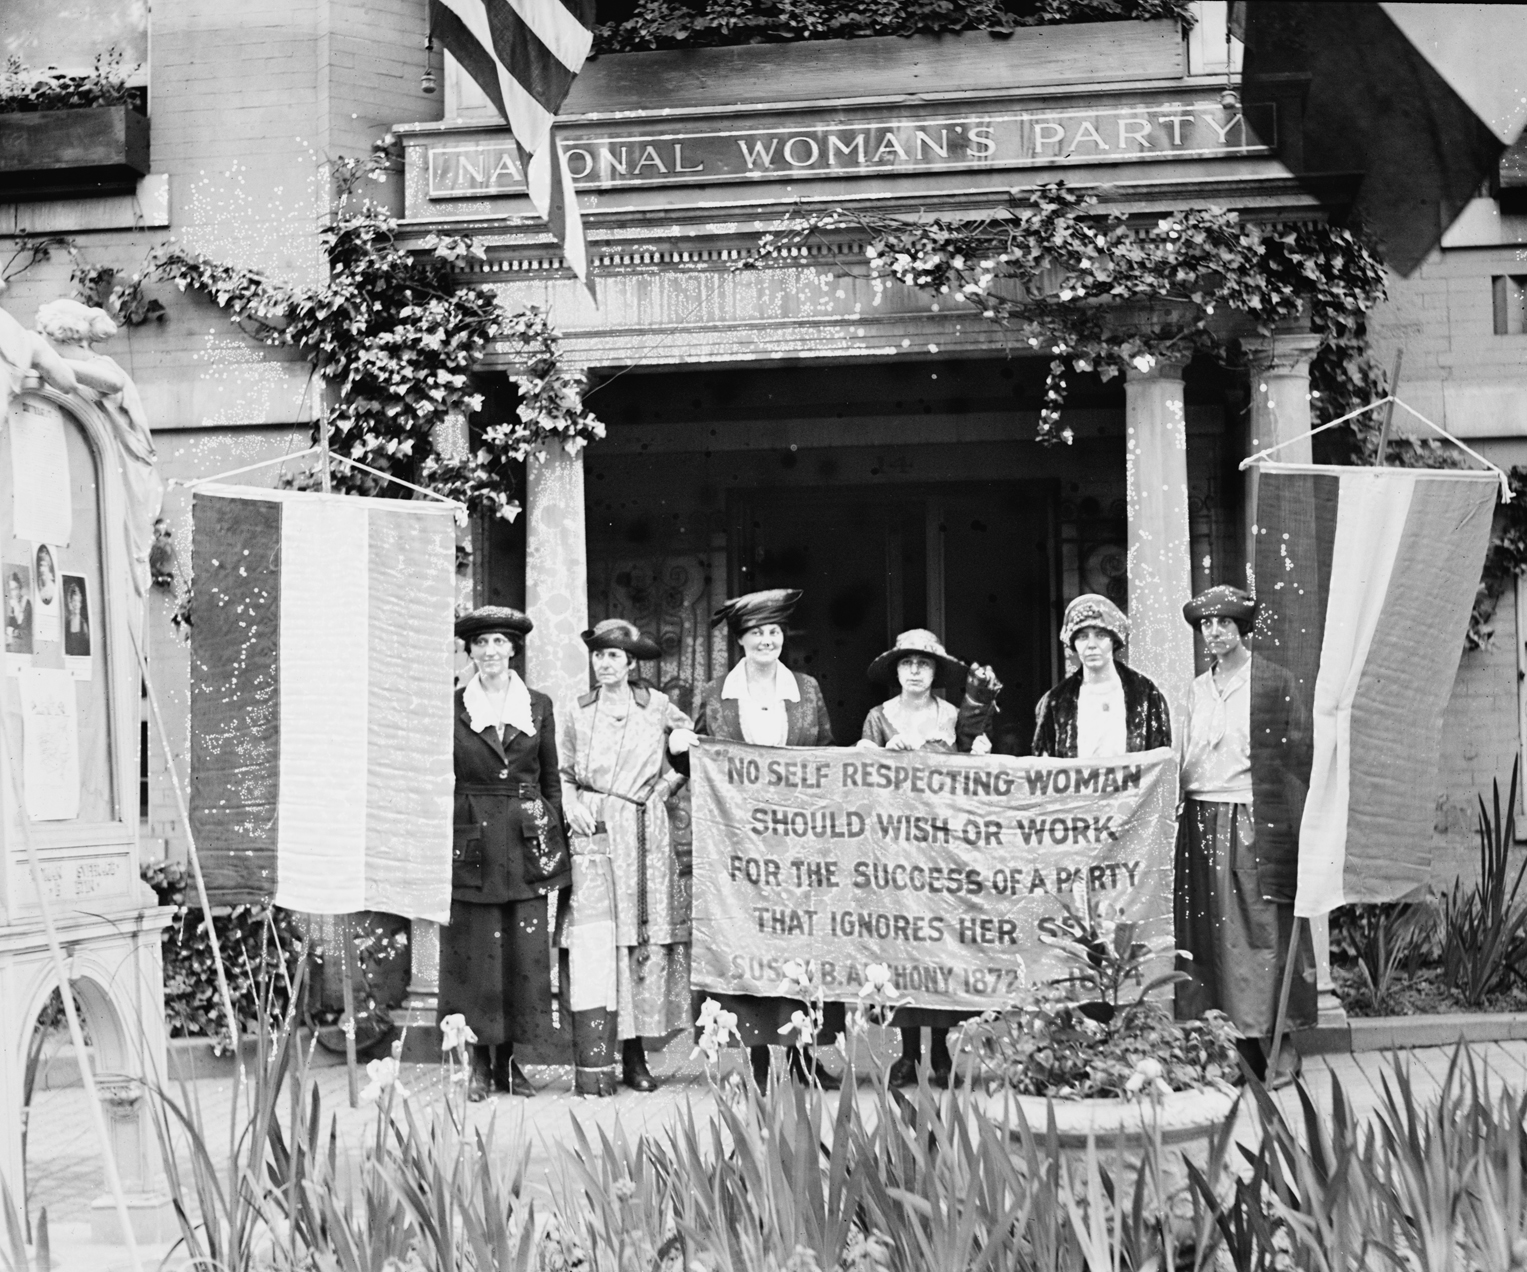 UNITED STATES - CIRCA 1900:  Suffragettes hold up banner in front of a building that has an architrave sign of the National Woman's Party; They claim to be ignored by the organization and hold up a protesting banner.  (Photo by Buyenlarge/Getty Images)